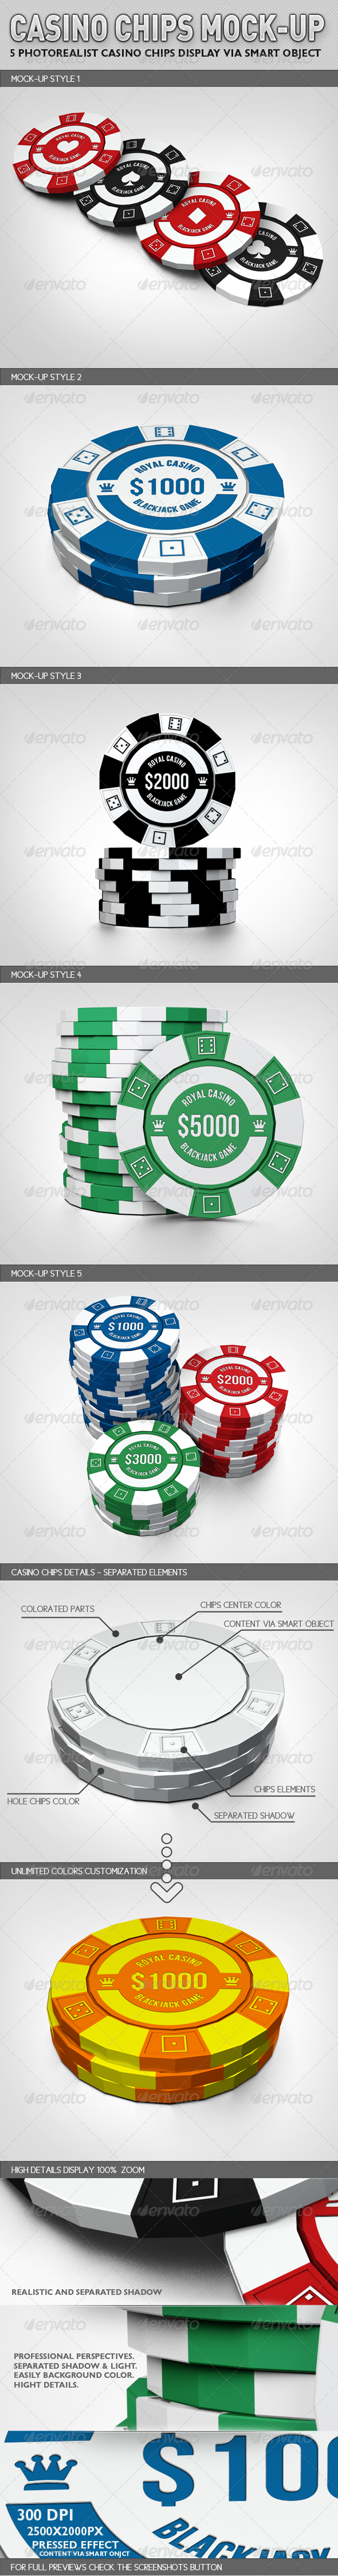 Casino Chips Mock-up - Miscellaneous Product Mock-Ups